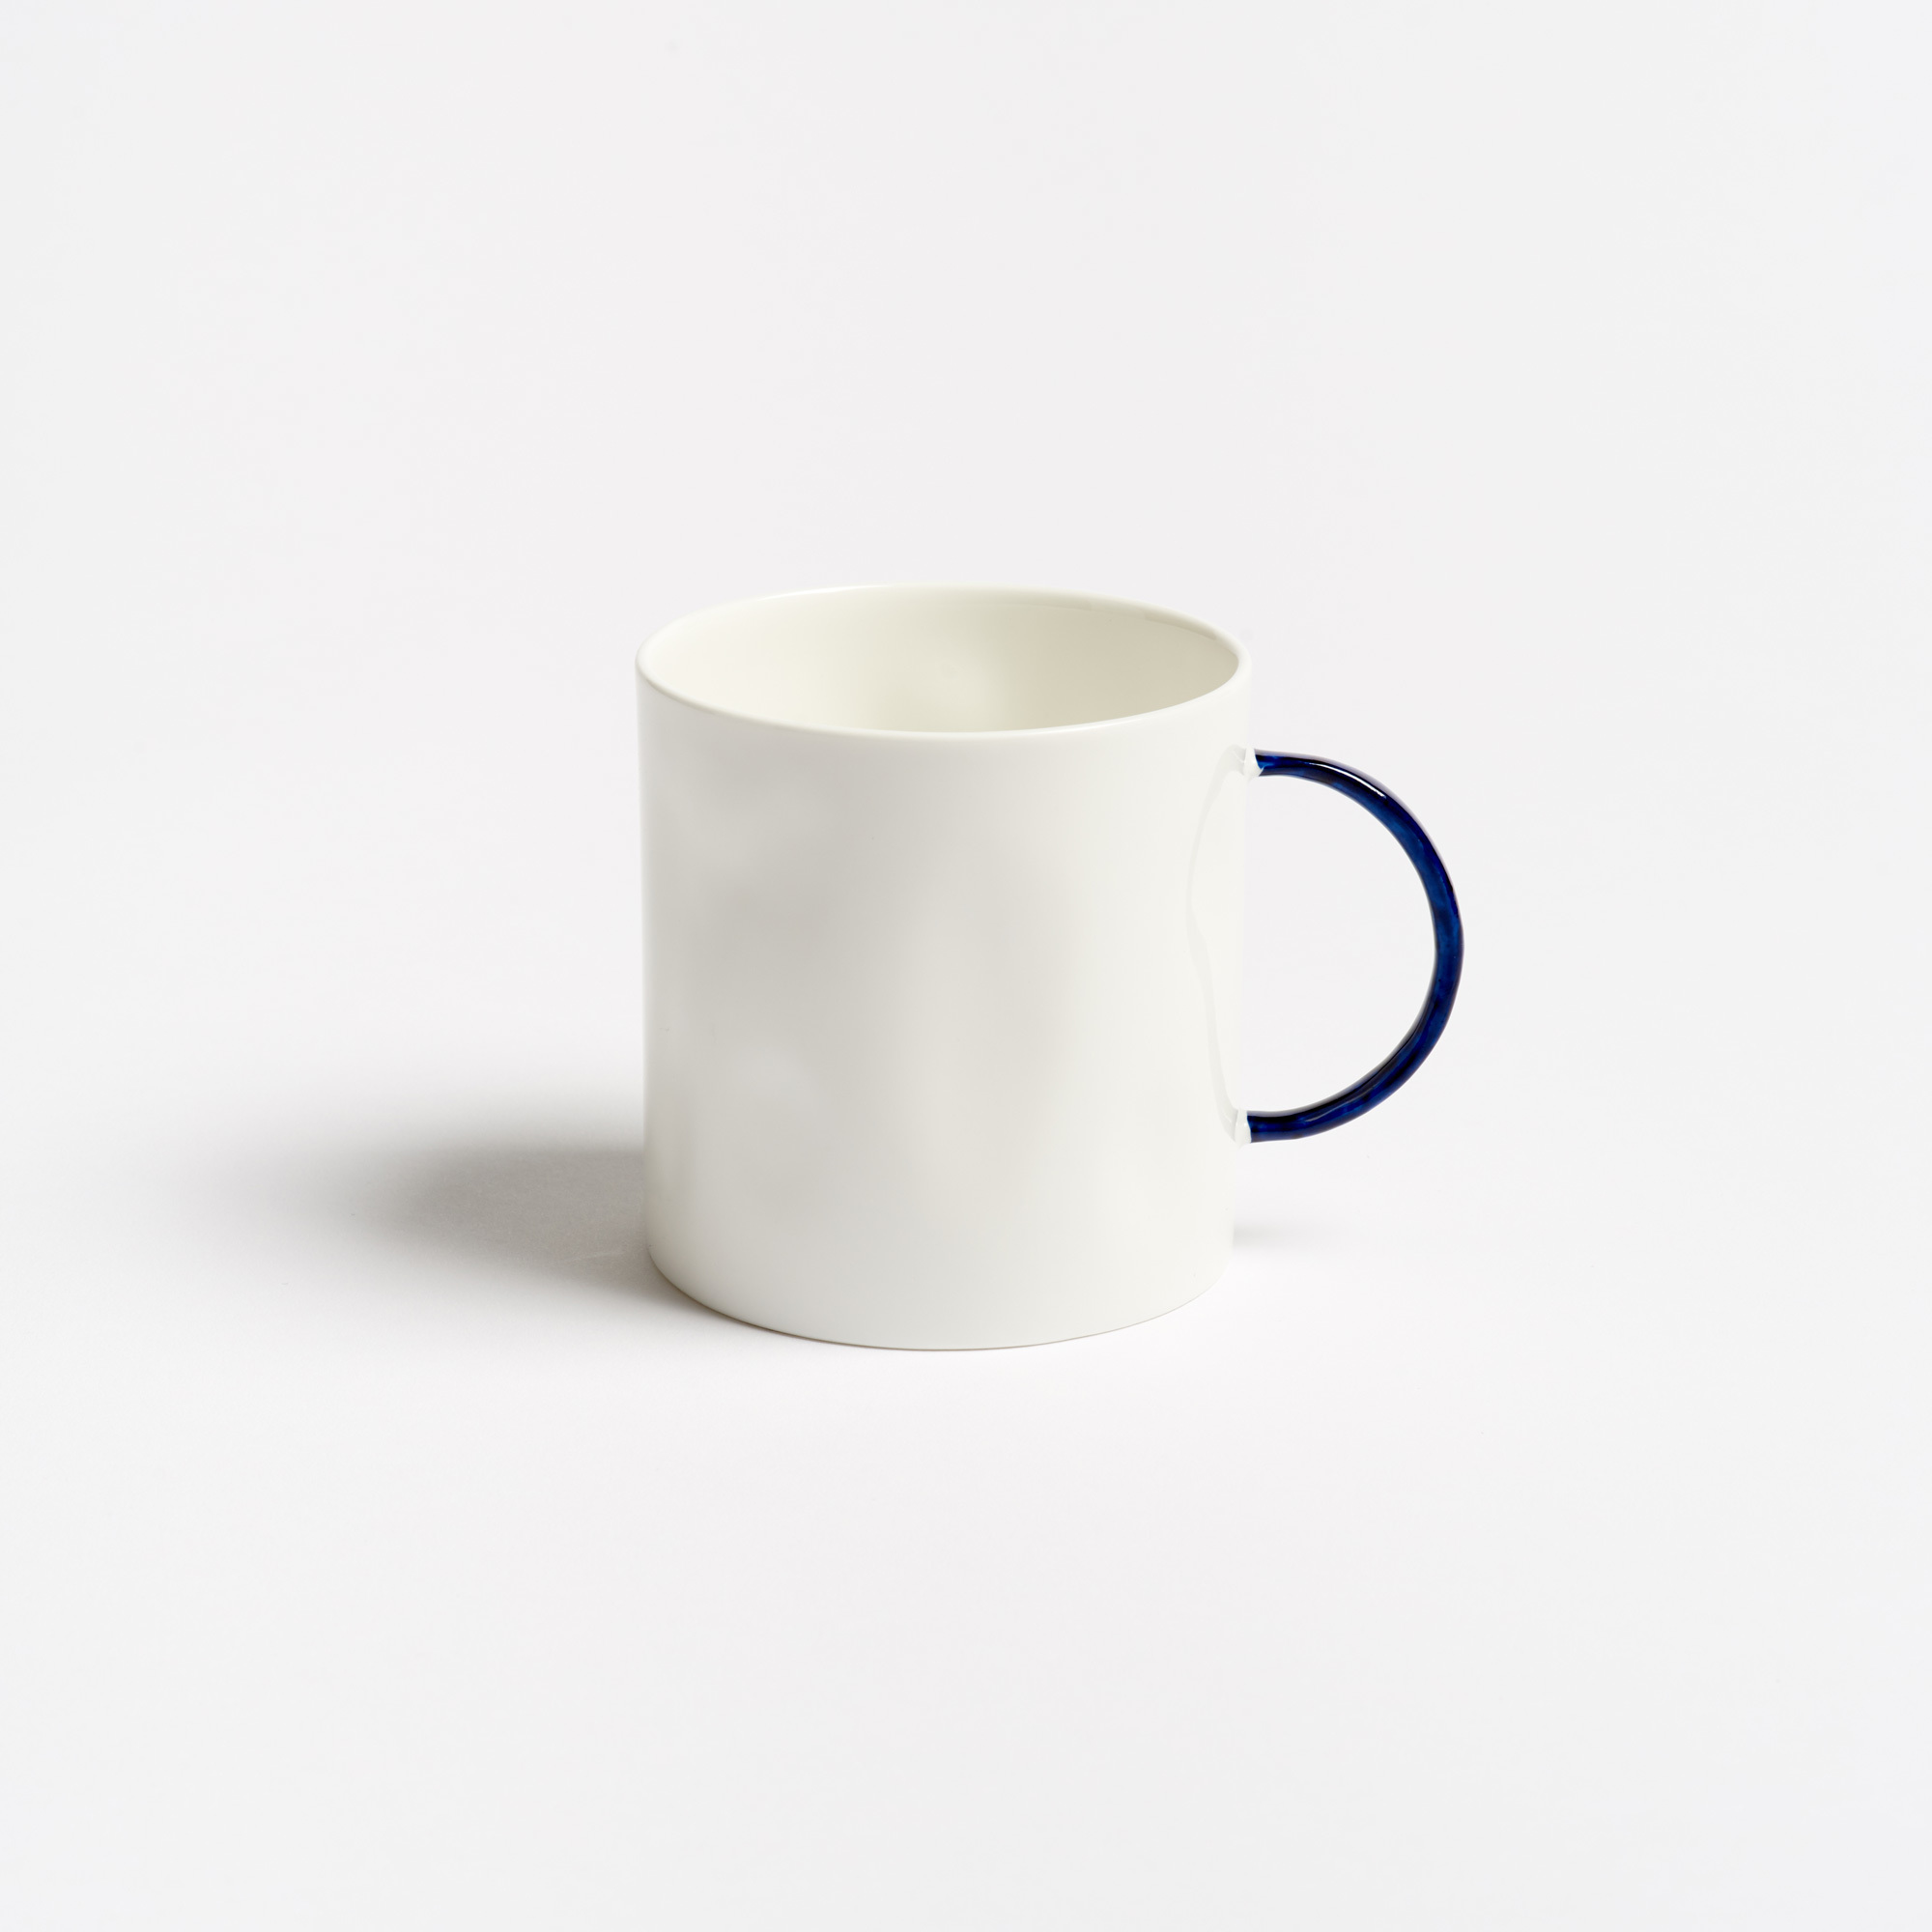 Feldspar Fine Bone China Tea Mug | The Garnered | The Garnered